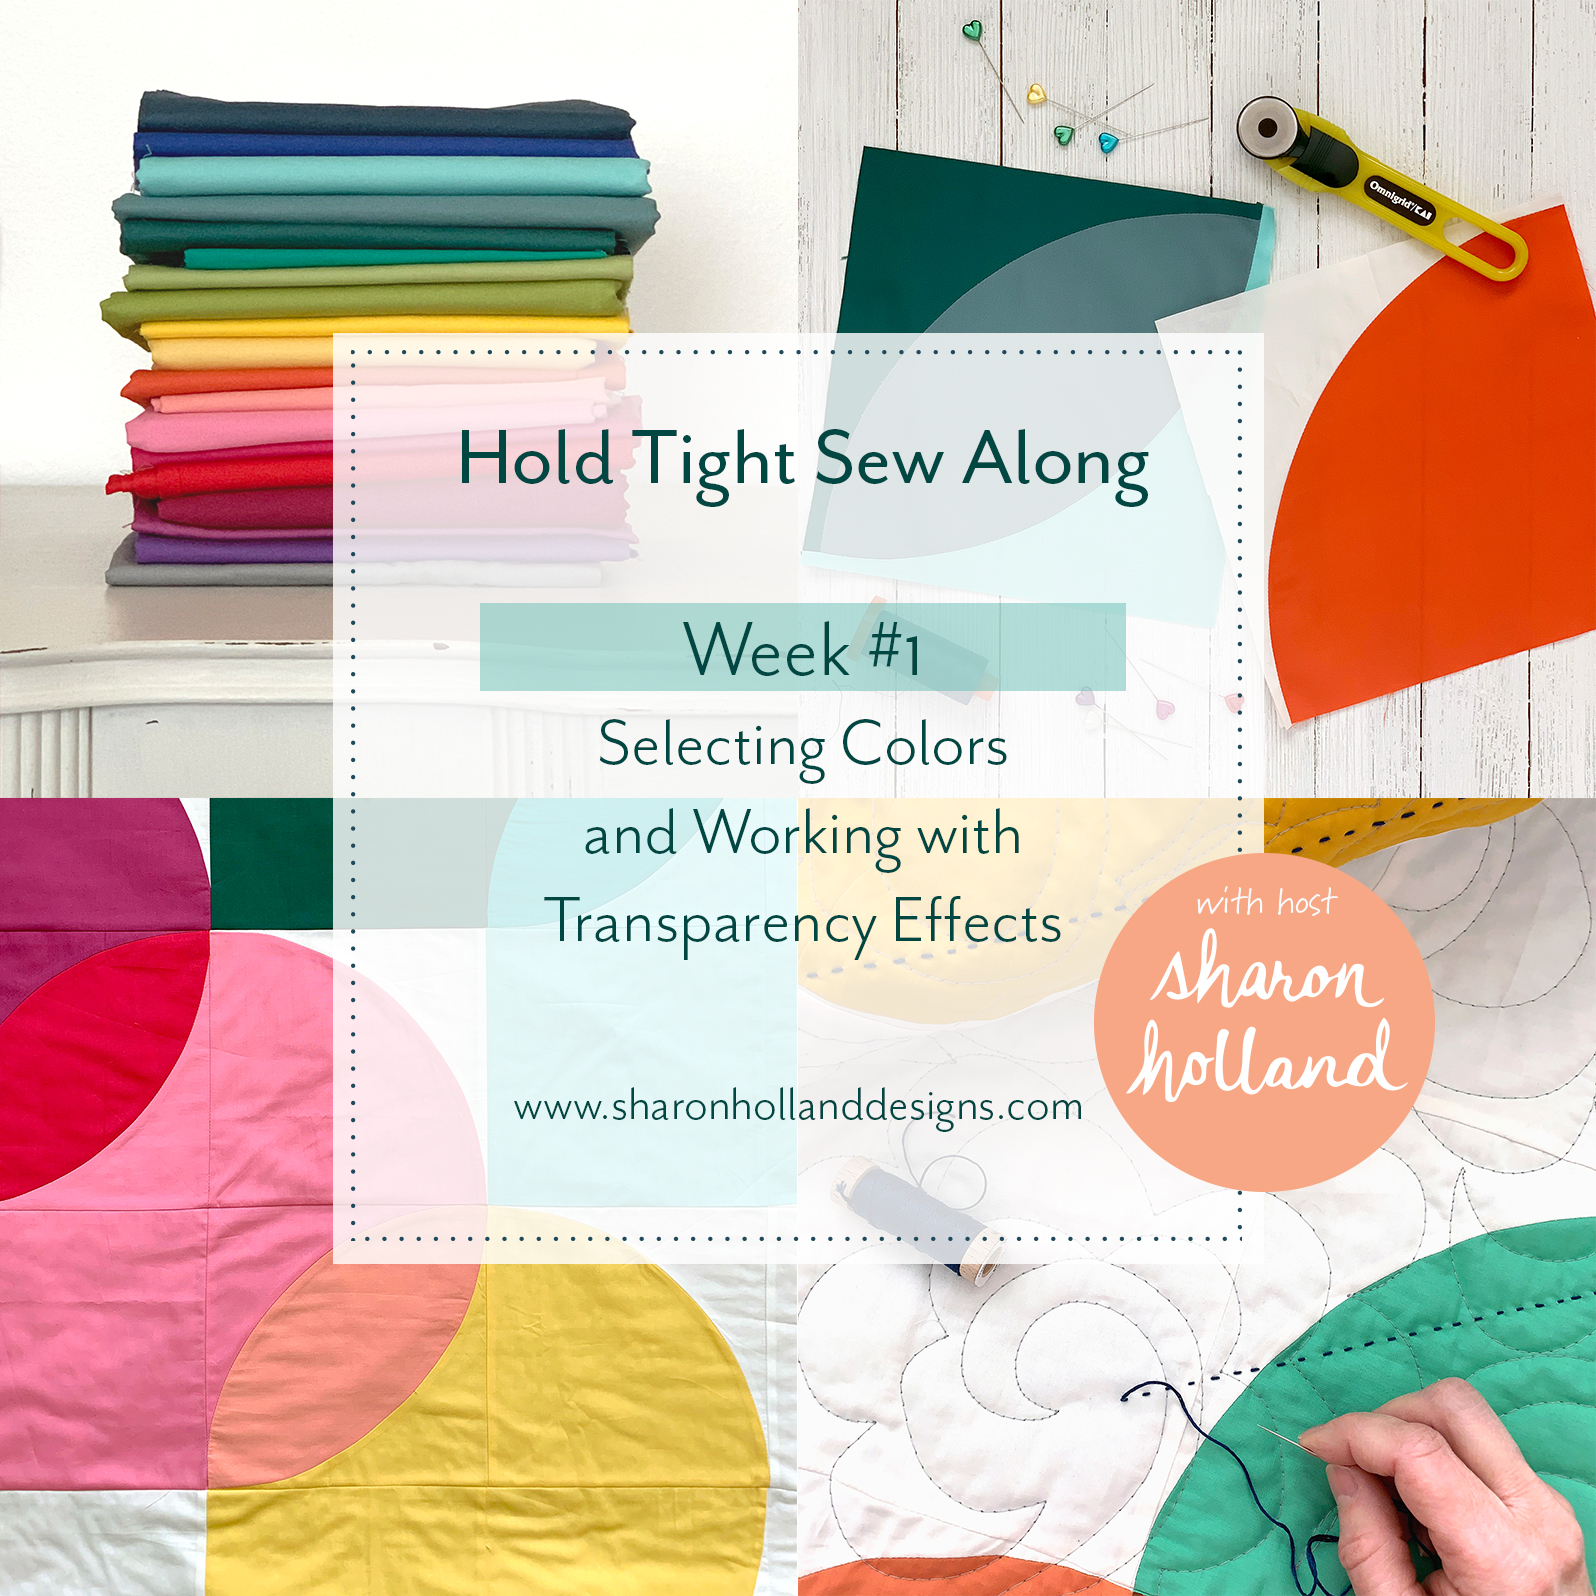 Hold Tight Sew Along 1 Sq cover.jpg